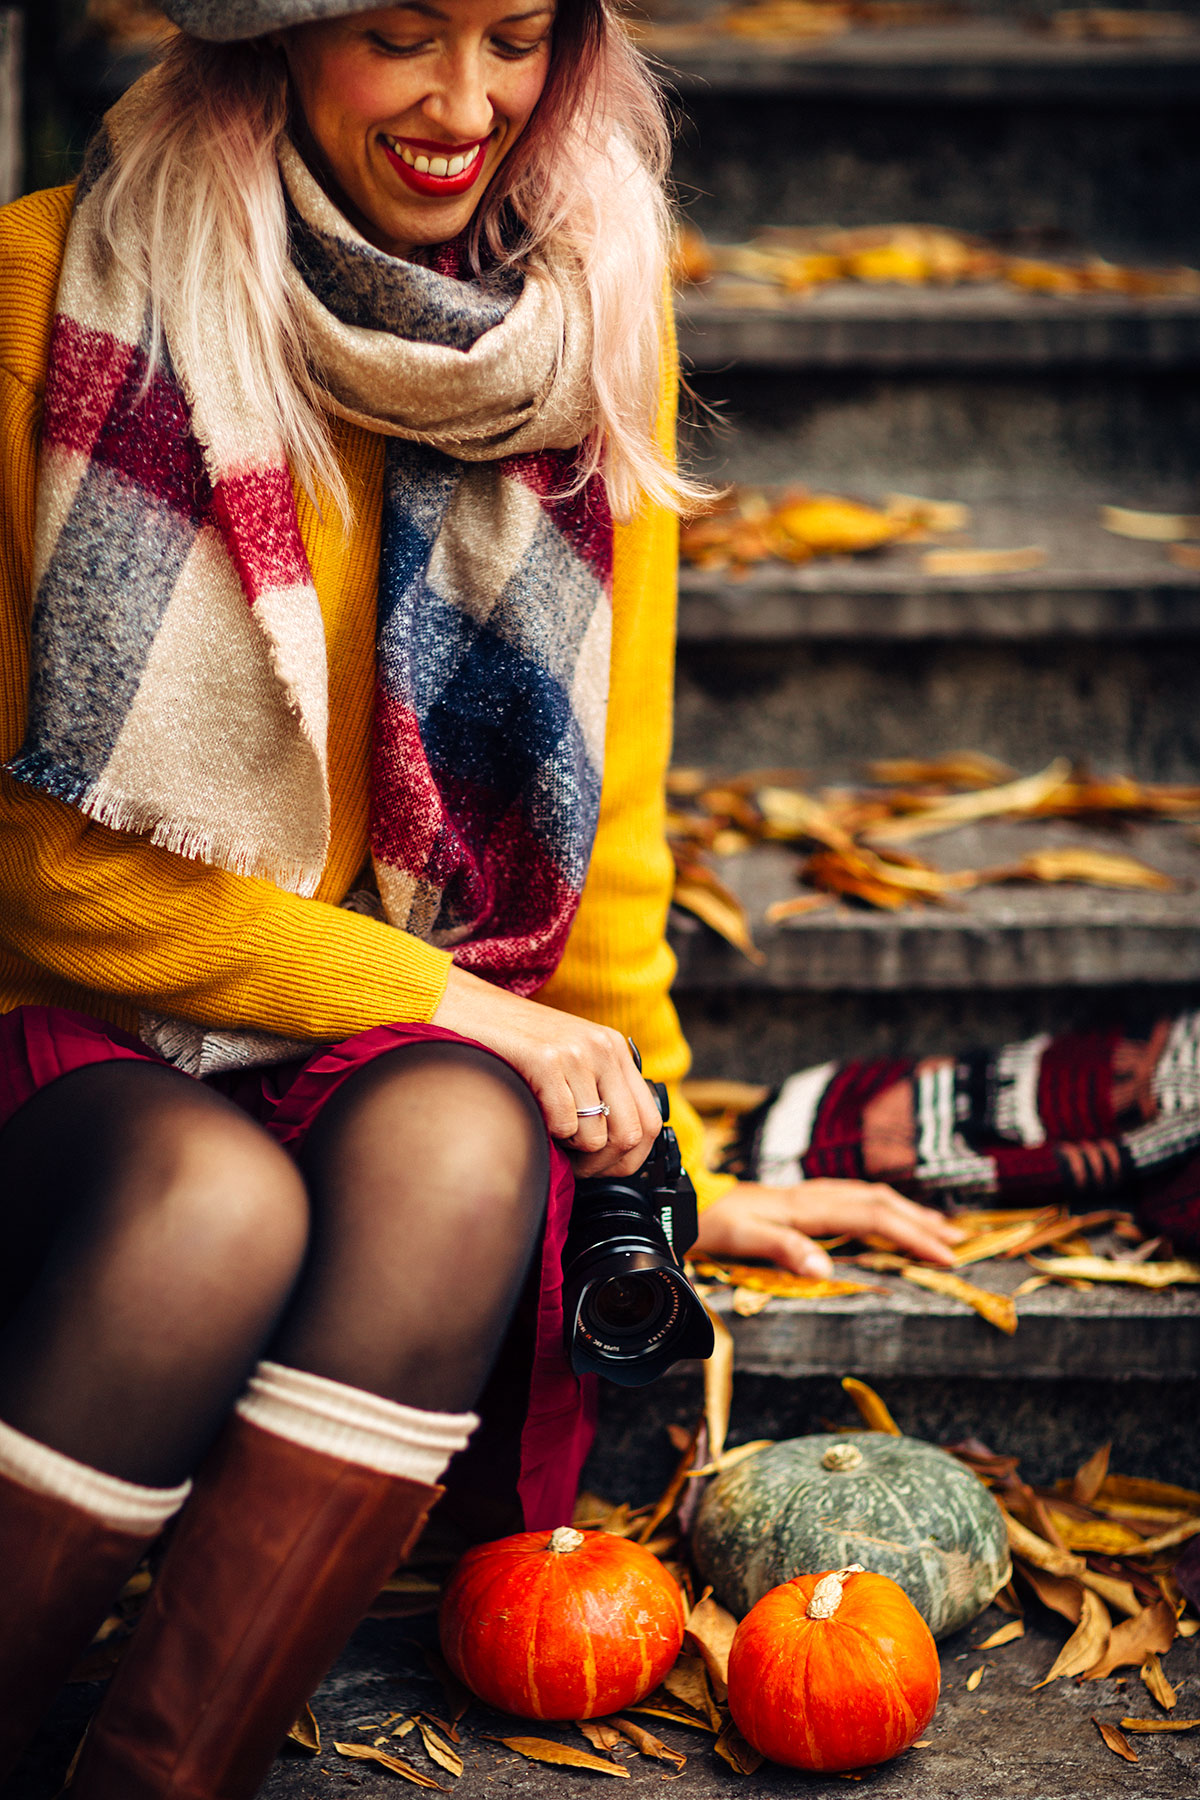 Francesca Bettoni www.beautyfoodblog.com #autumn #fall #photography